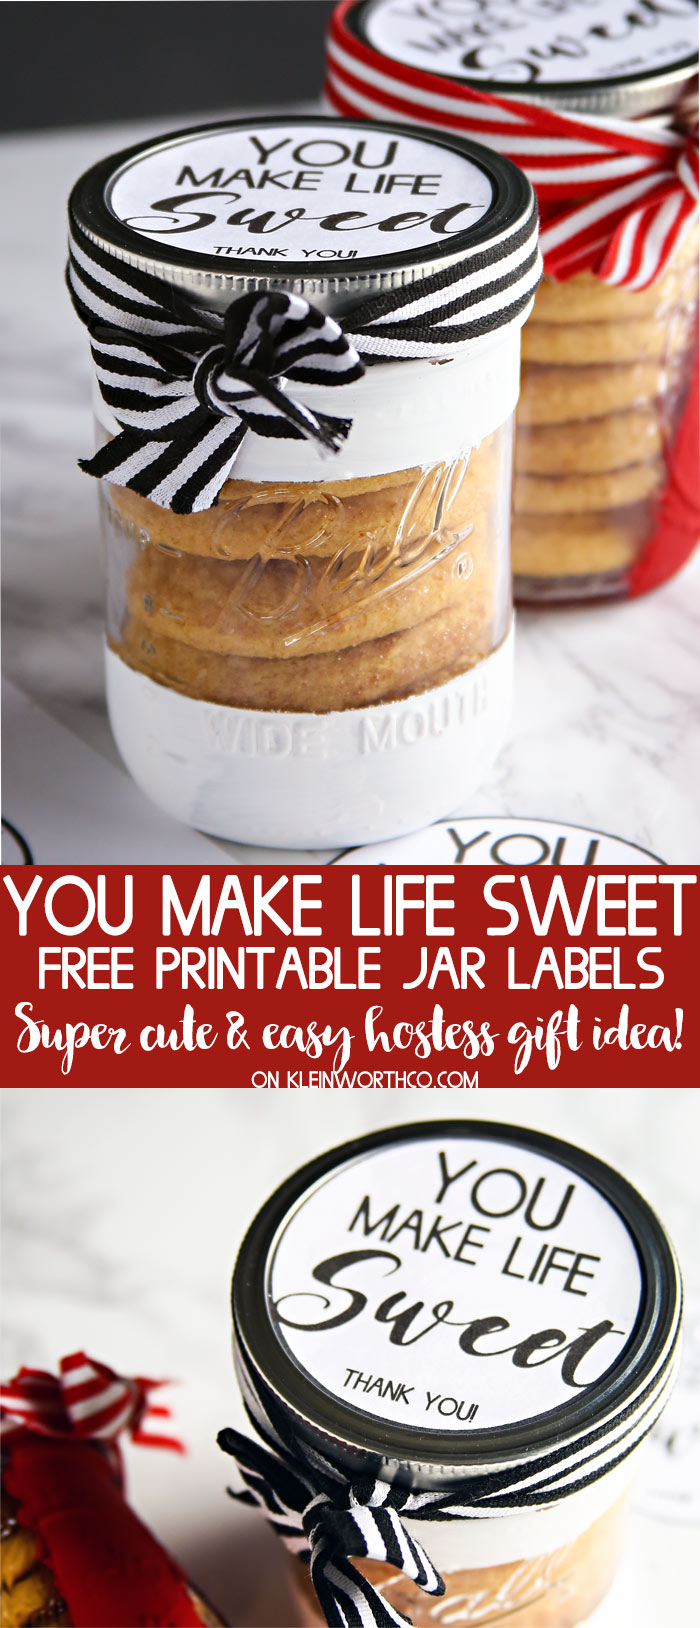 You Make Life Sweet - Free Printable Jar Label Gift Idea